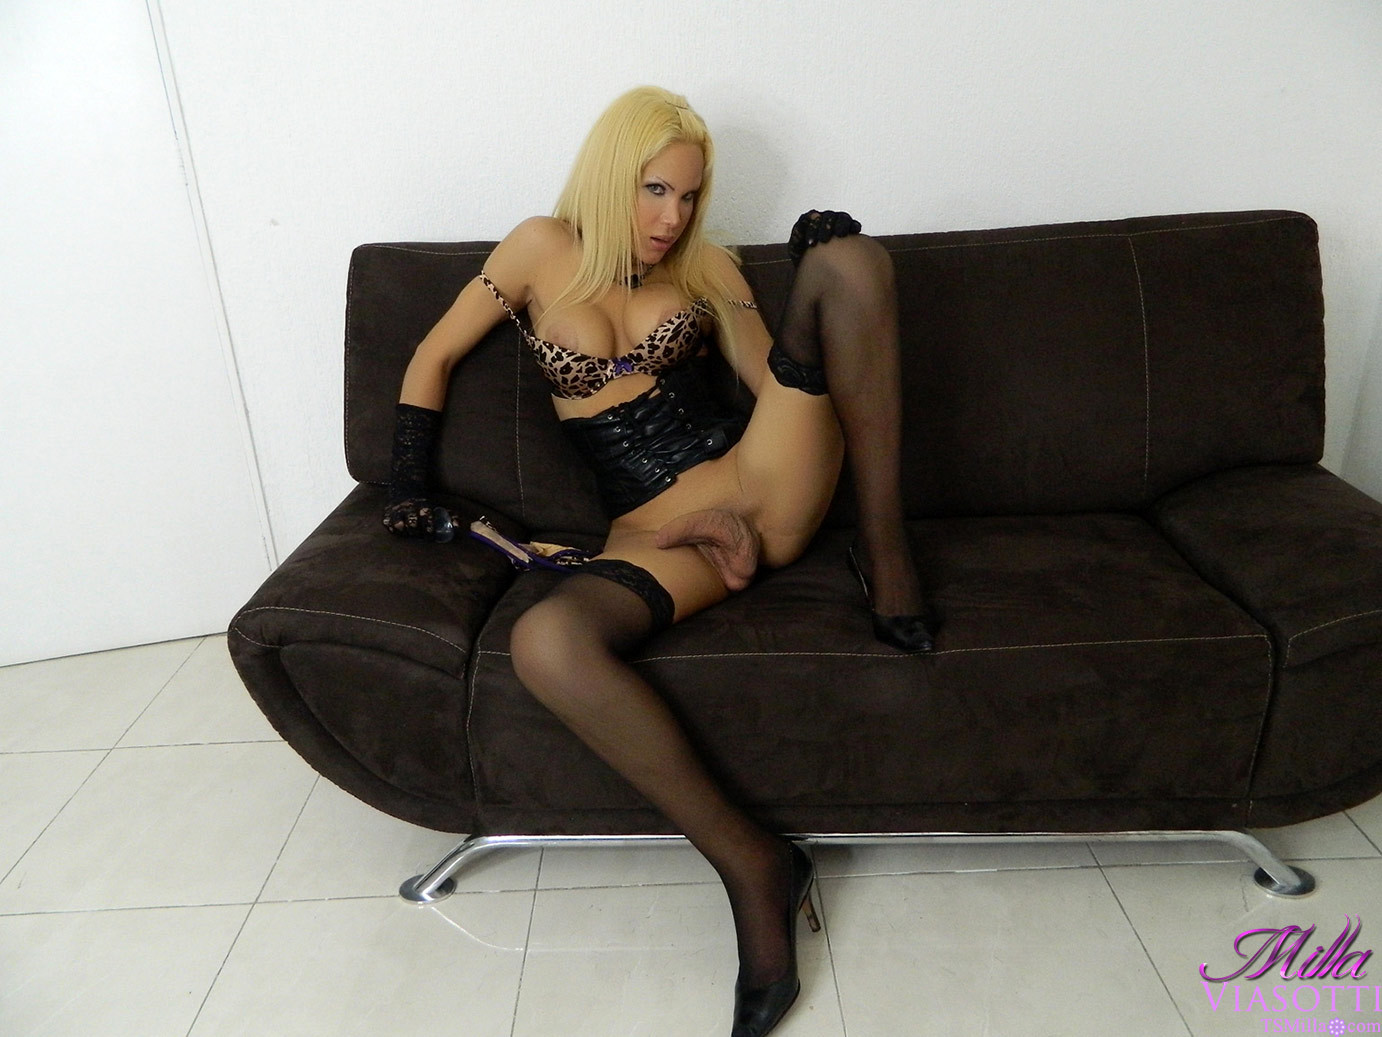 Naughty Femboy Spreads Her Long Legs And Plays With Her Penis